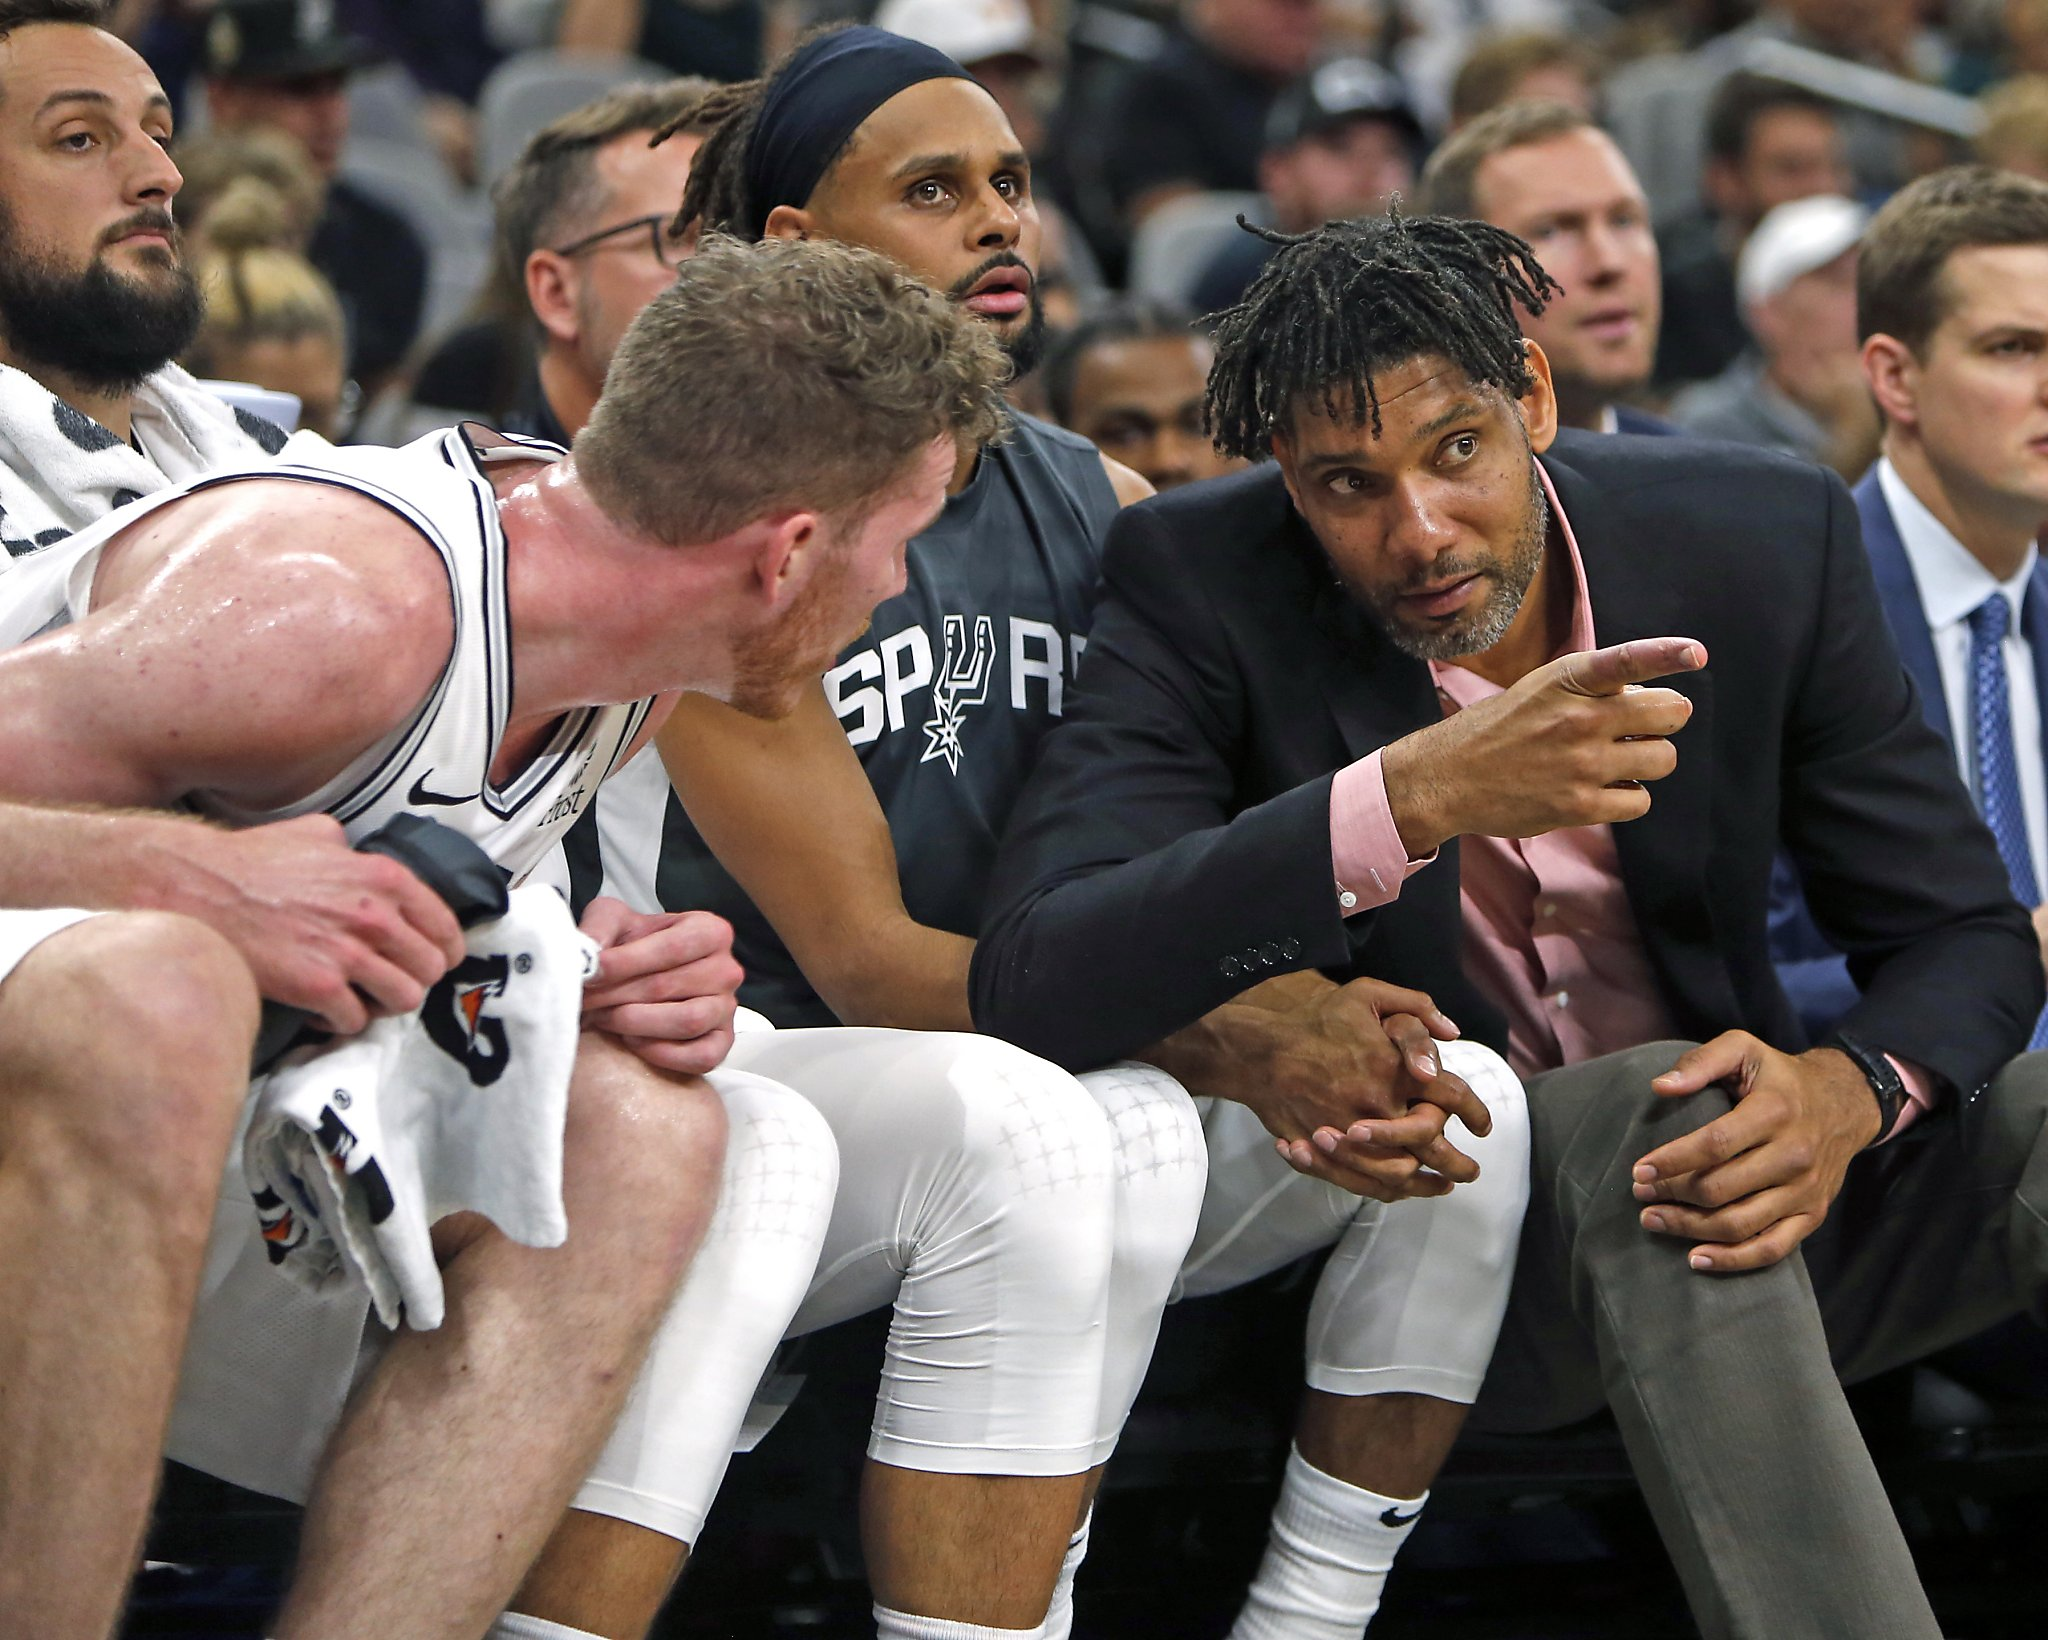 Spurs' Jakob Poeltl hopes his play has opened eyes to his potential